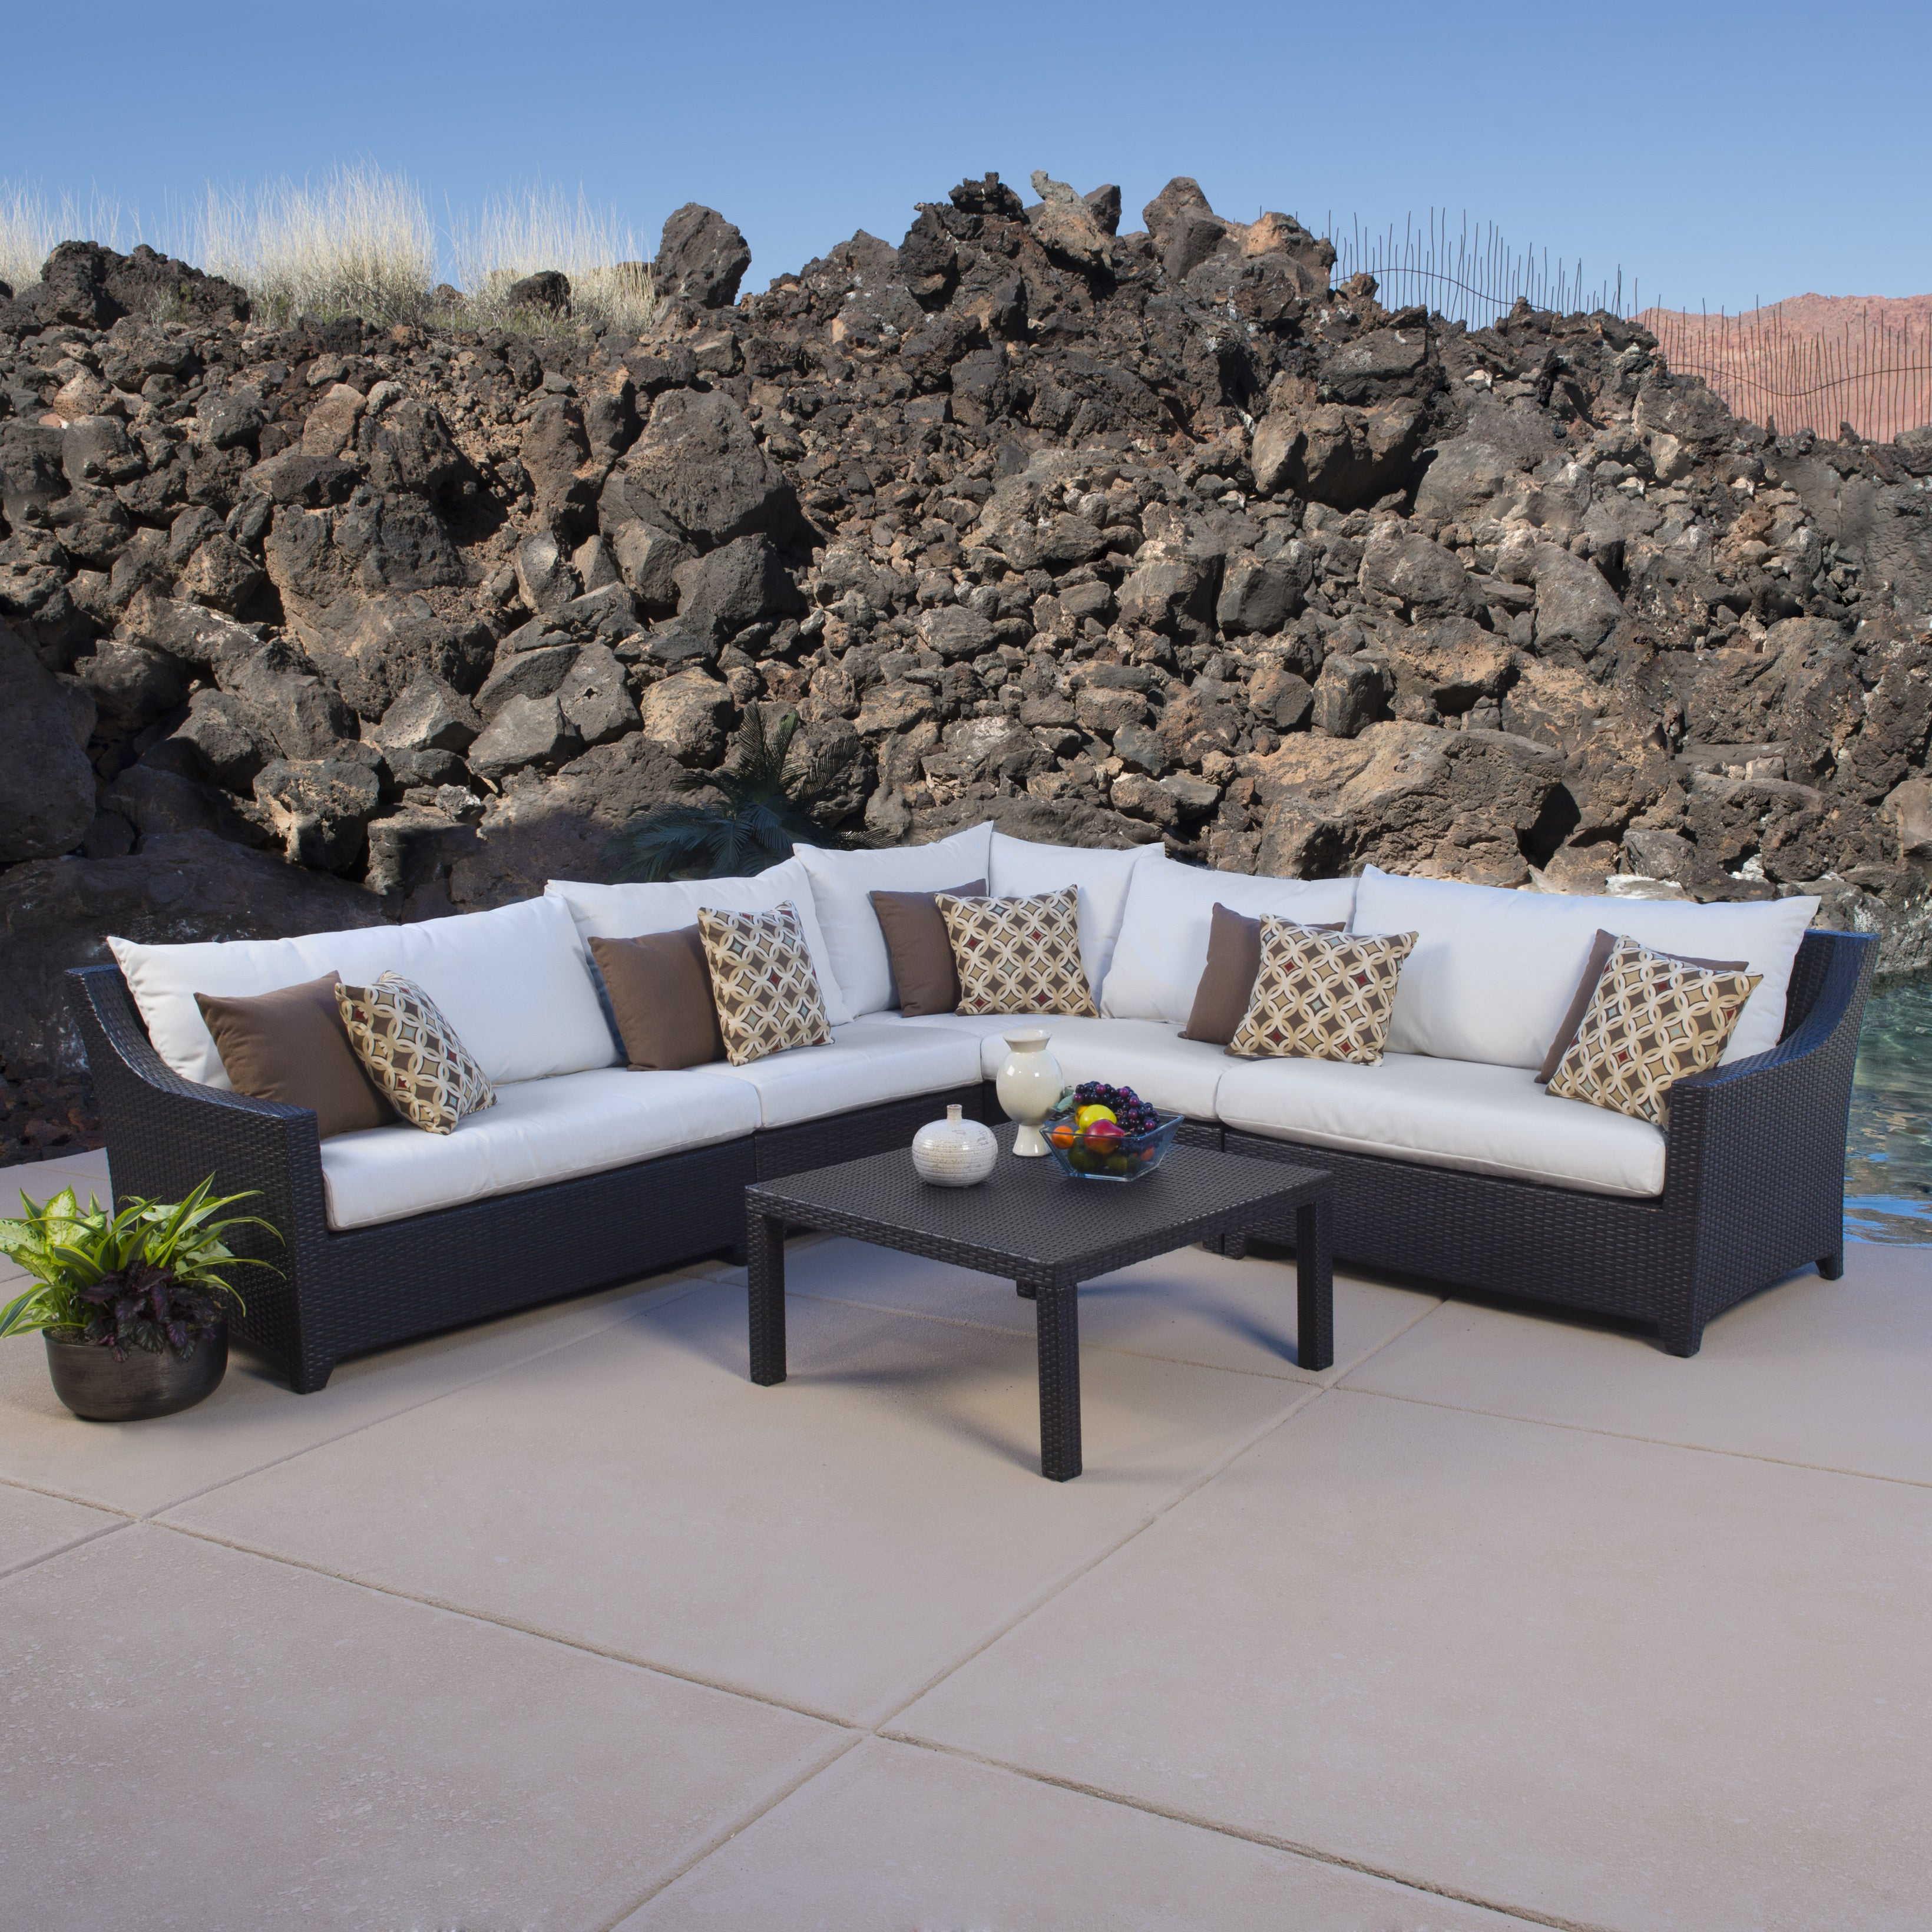 Best And Newest Deco 6 Piece Corner Sectional Set With Moroccan Cream Cushionsrst Brands Within Tess Corner Living Patio Sectionals With Cushions (View 2 of 20)